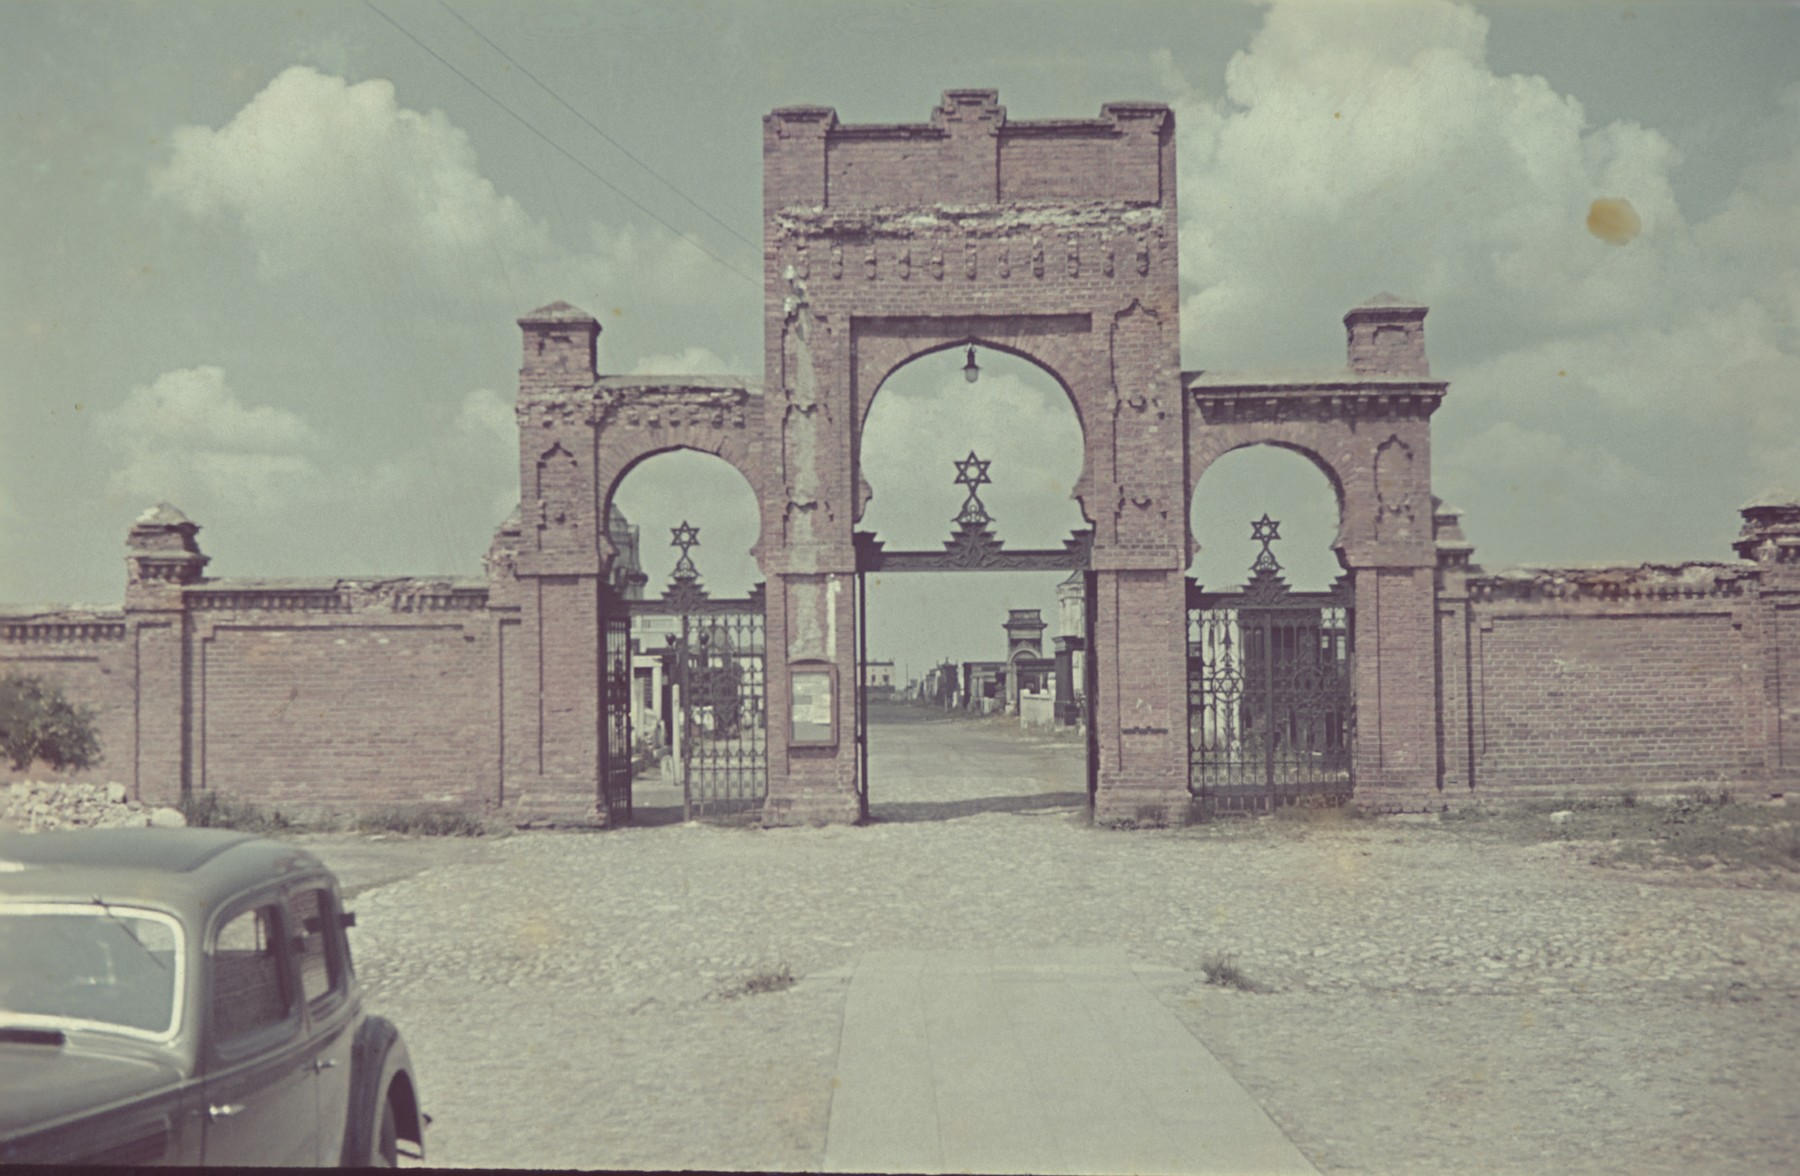 Entrance gate to the Jewish cemetery in the Lodz ghetto.